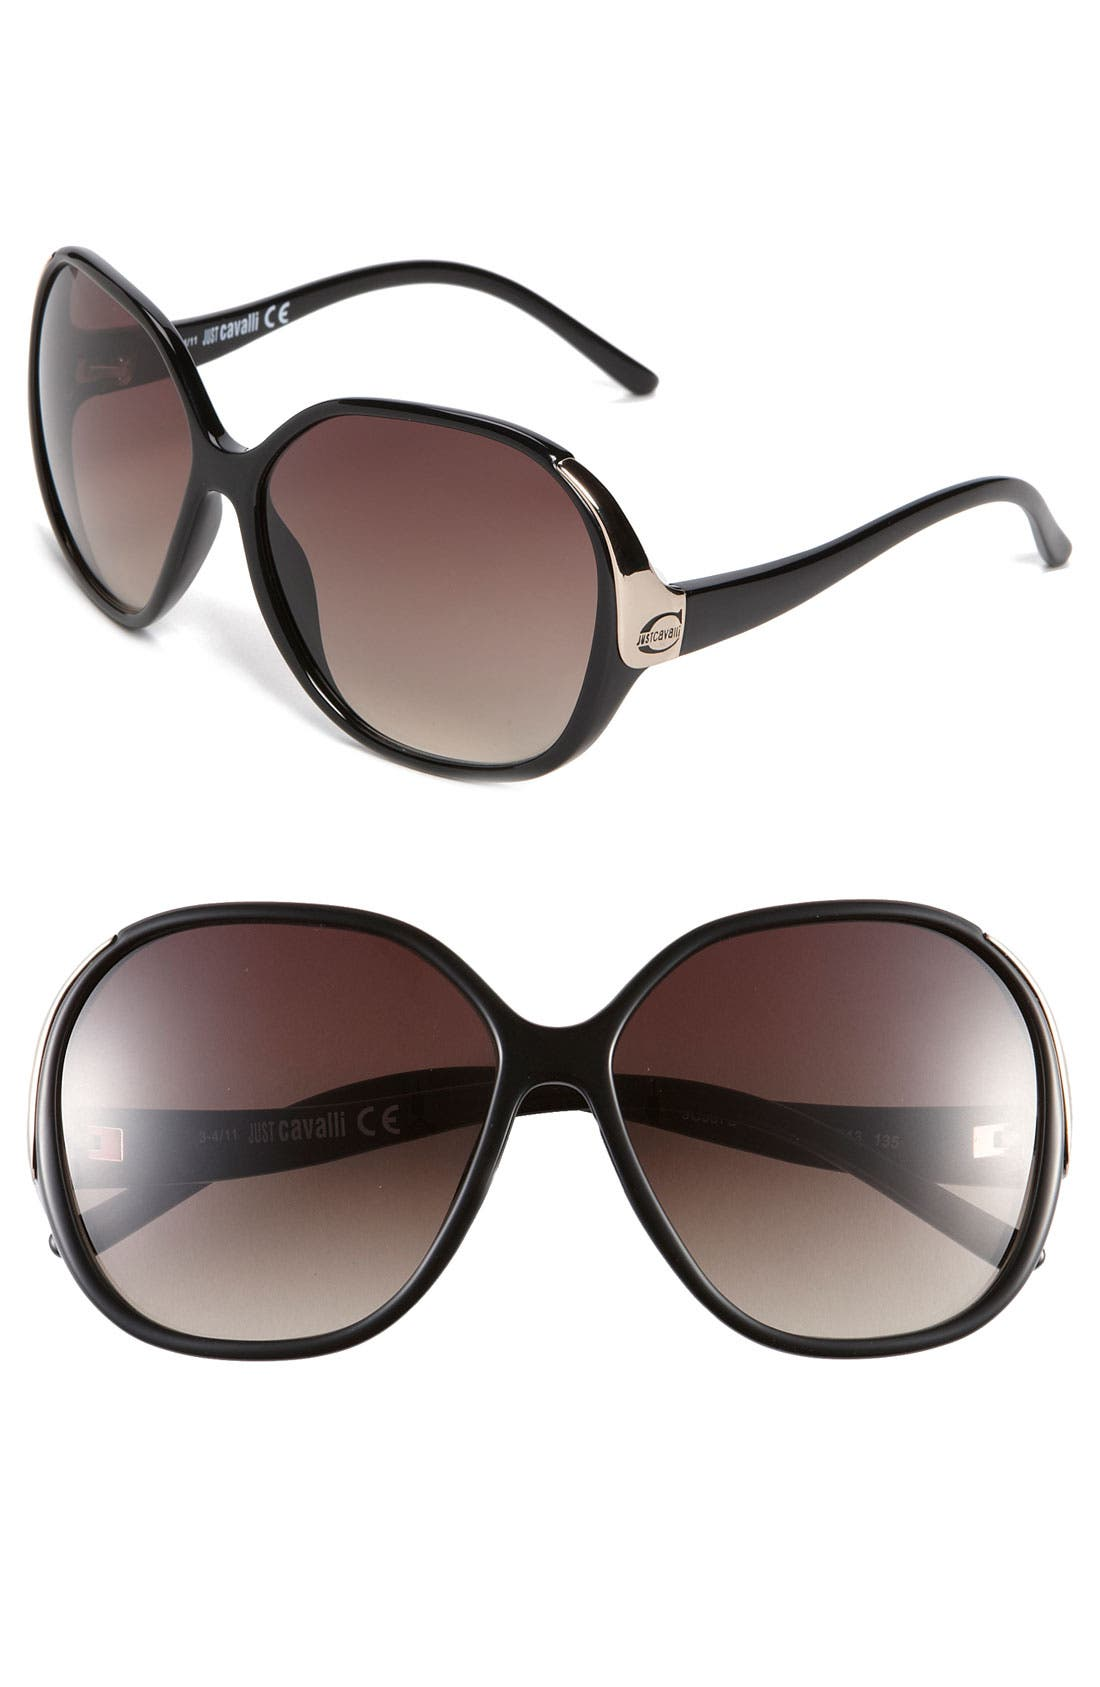 Alternate Image 1 Selected - Just Cavalli Oversized Sunglasses (Special Purchase)